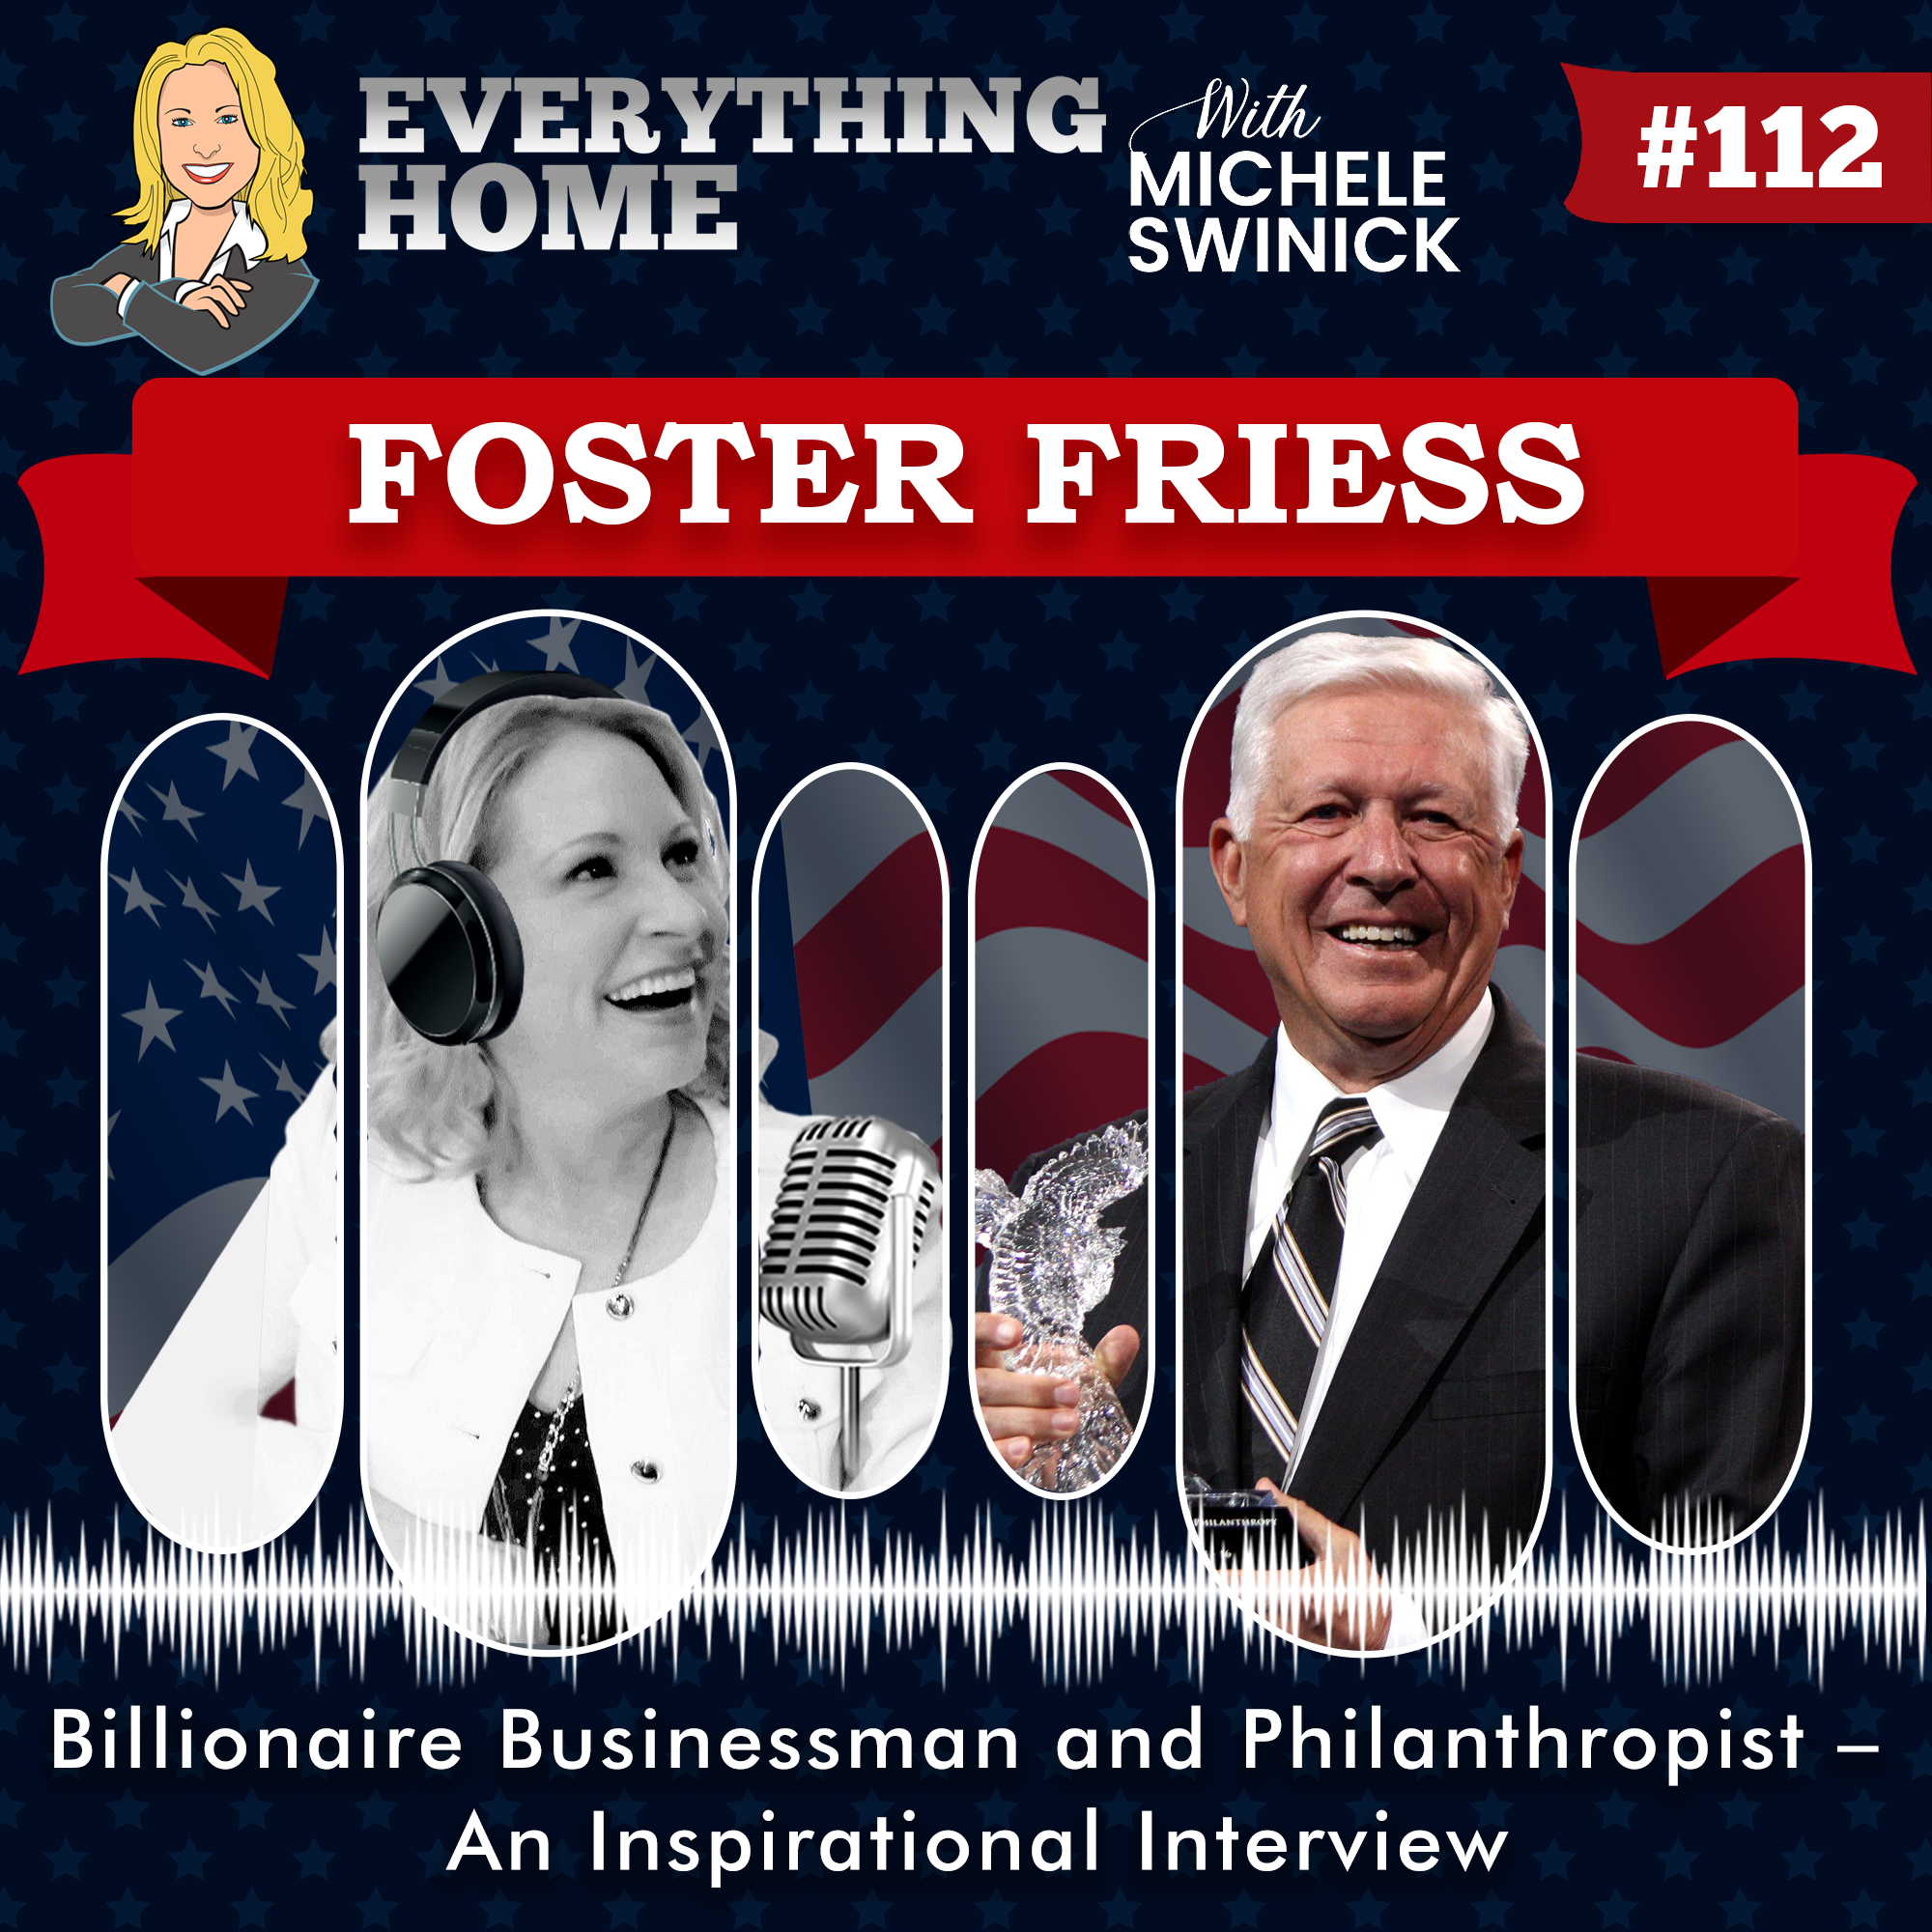 FOSTER FRIESS WVFORM #112